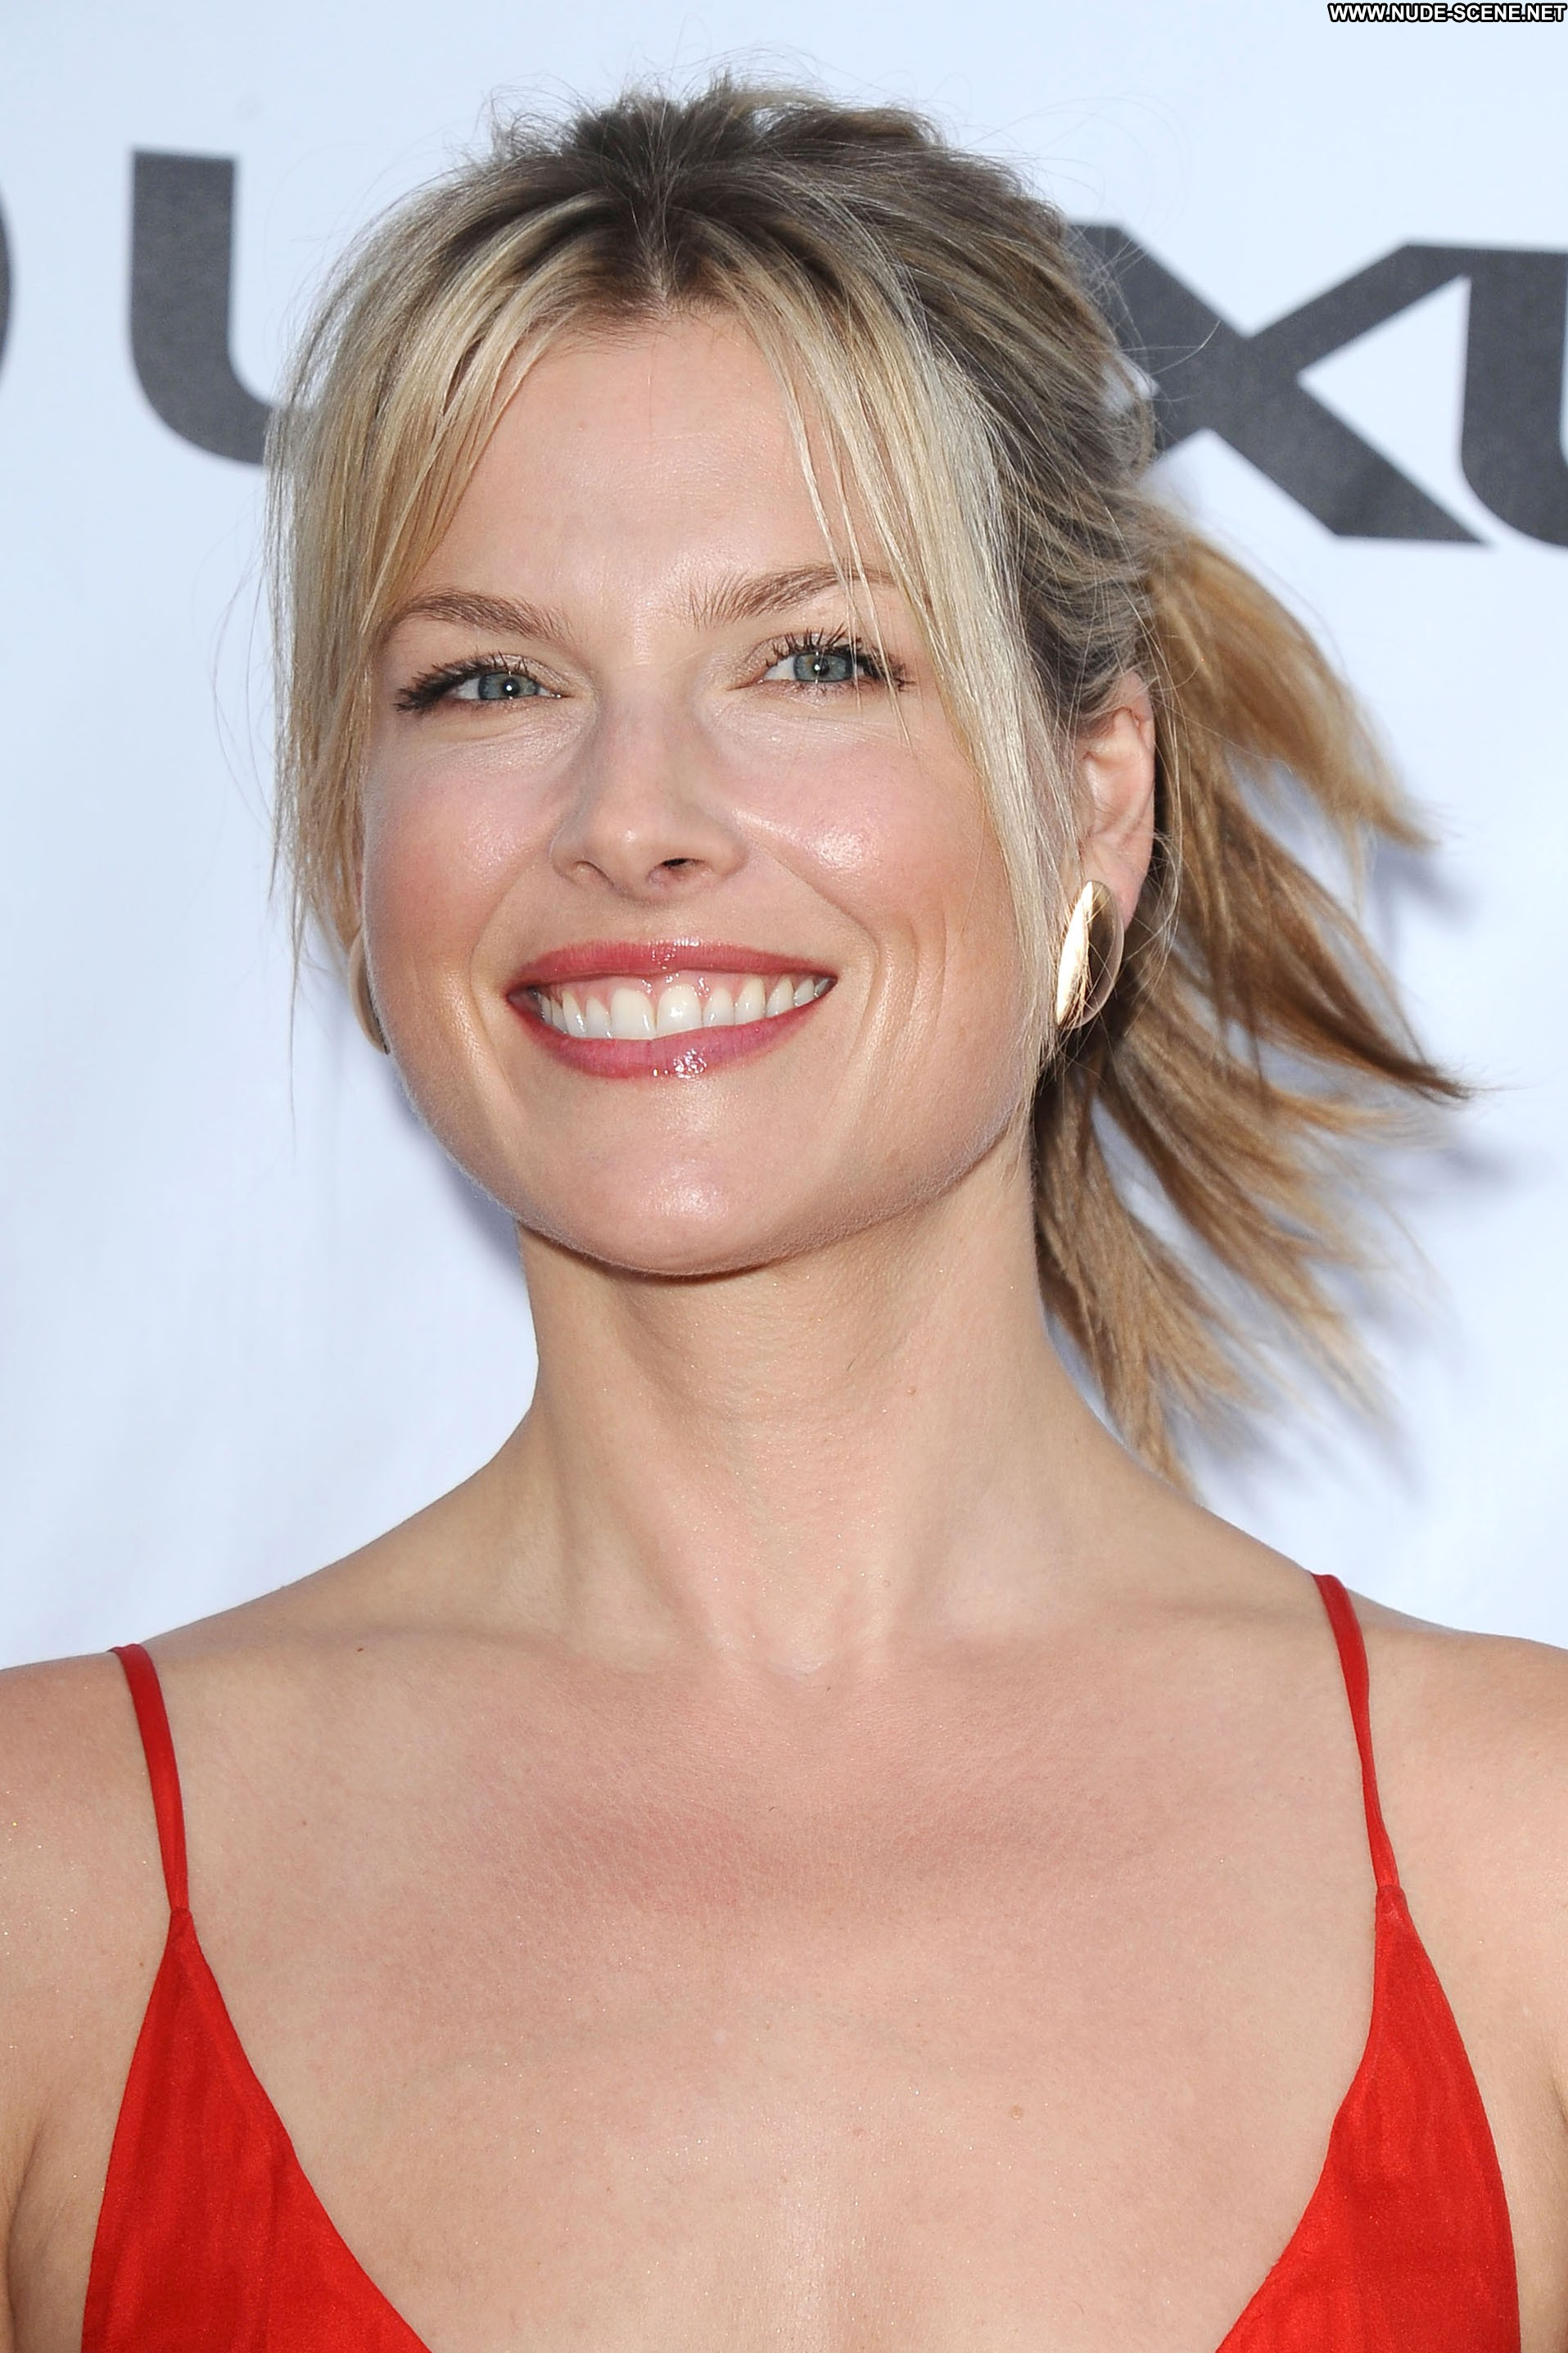 Ali Larter: Hot in Pink In Swimsuit - Photoshoot by